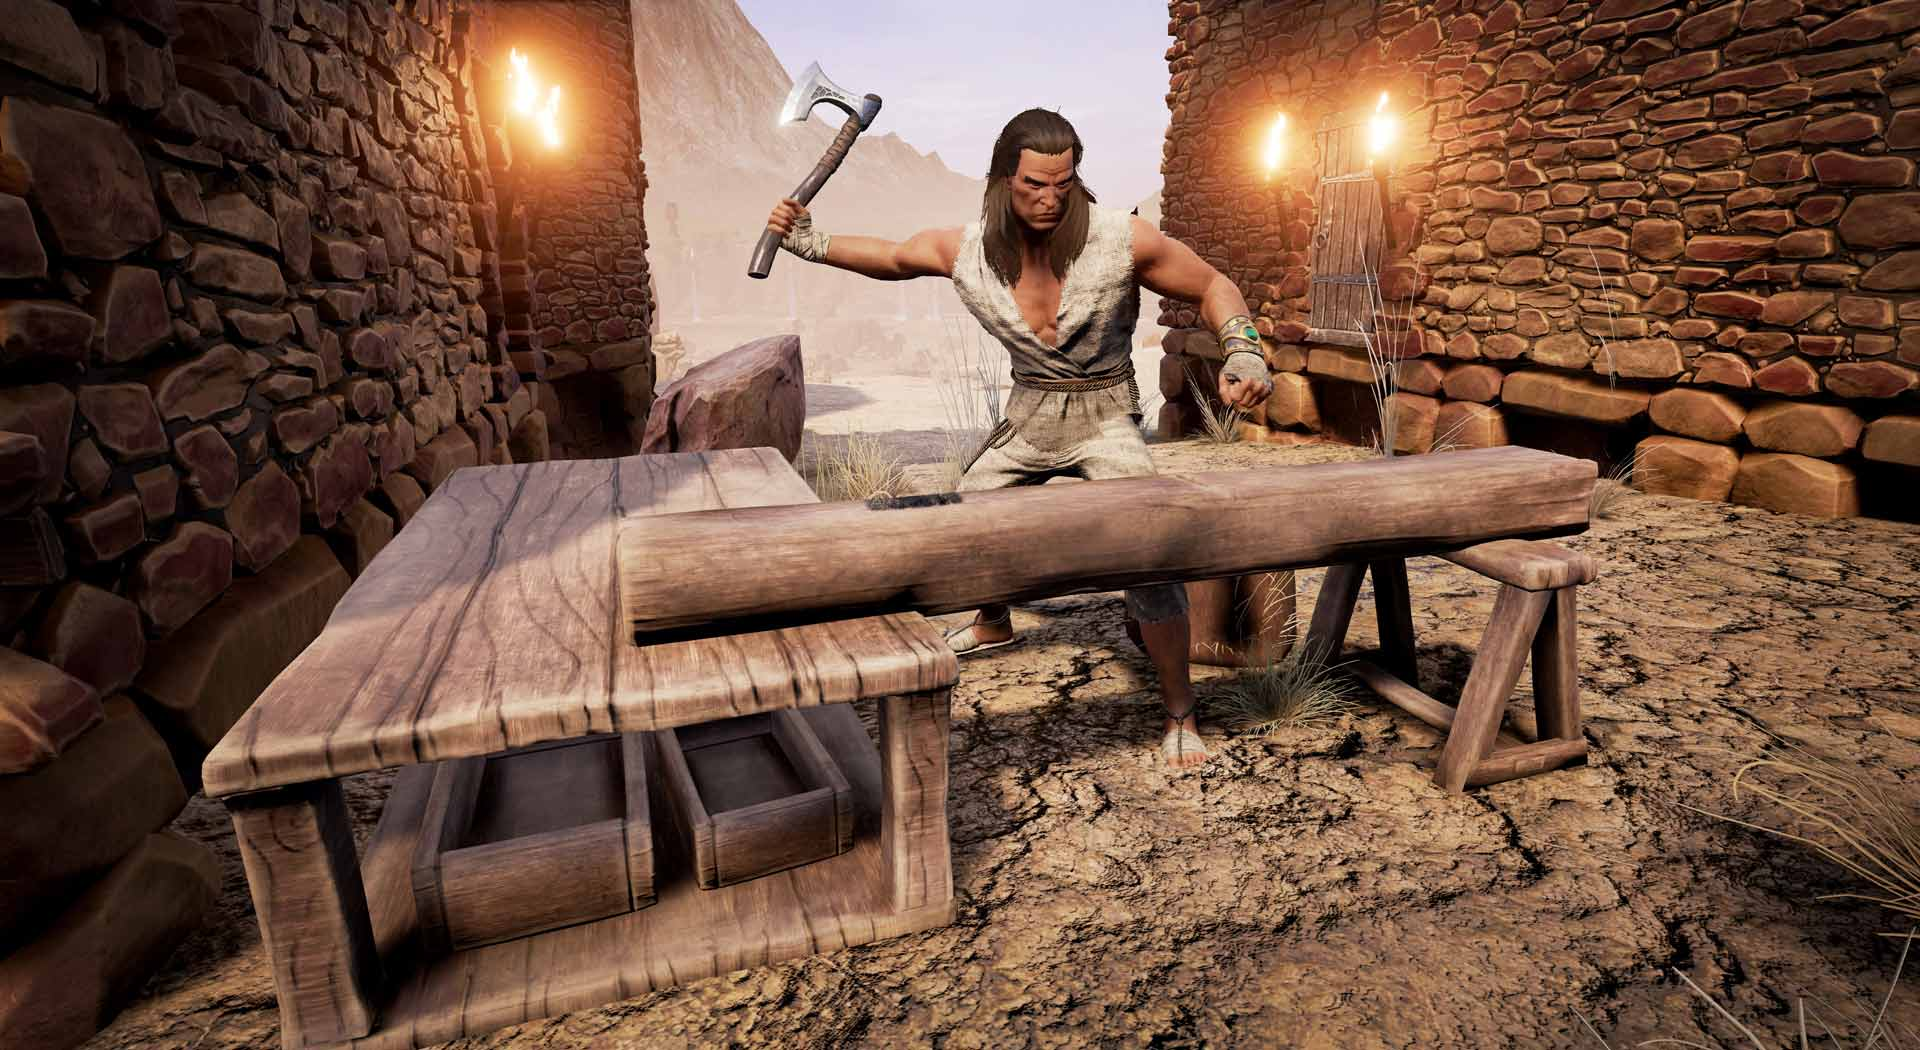 conan exiles server mieten das m sst ihr beachten. Black Bedroom Furniture Sets. Home Design Ideas